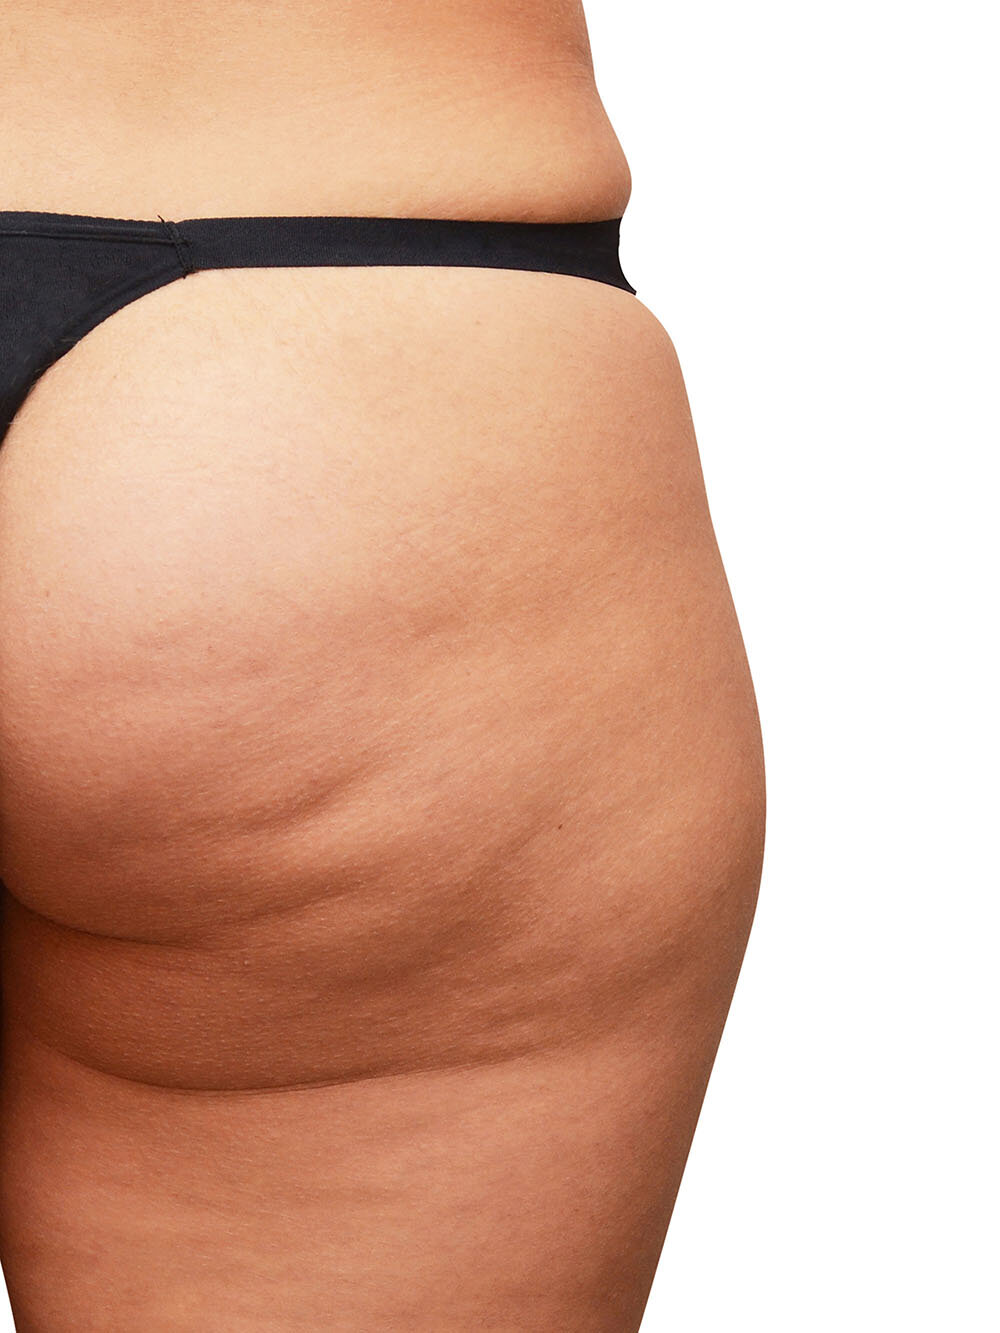 My Thighs Got Bigger Overnight What Causes Sudden Cellulite The Cellulite Experts Lipotherapeia